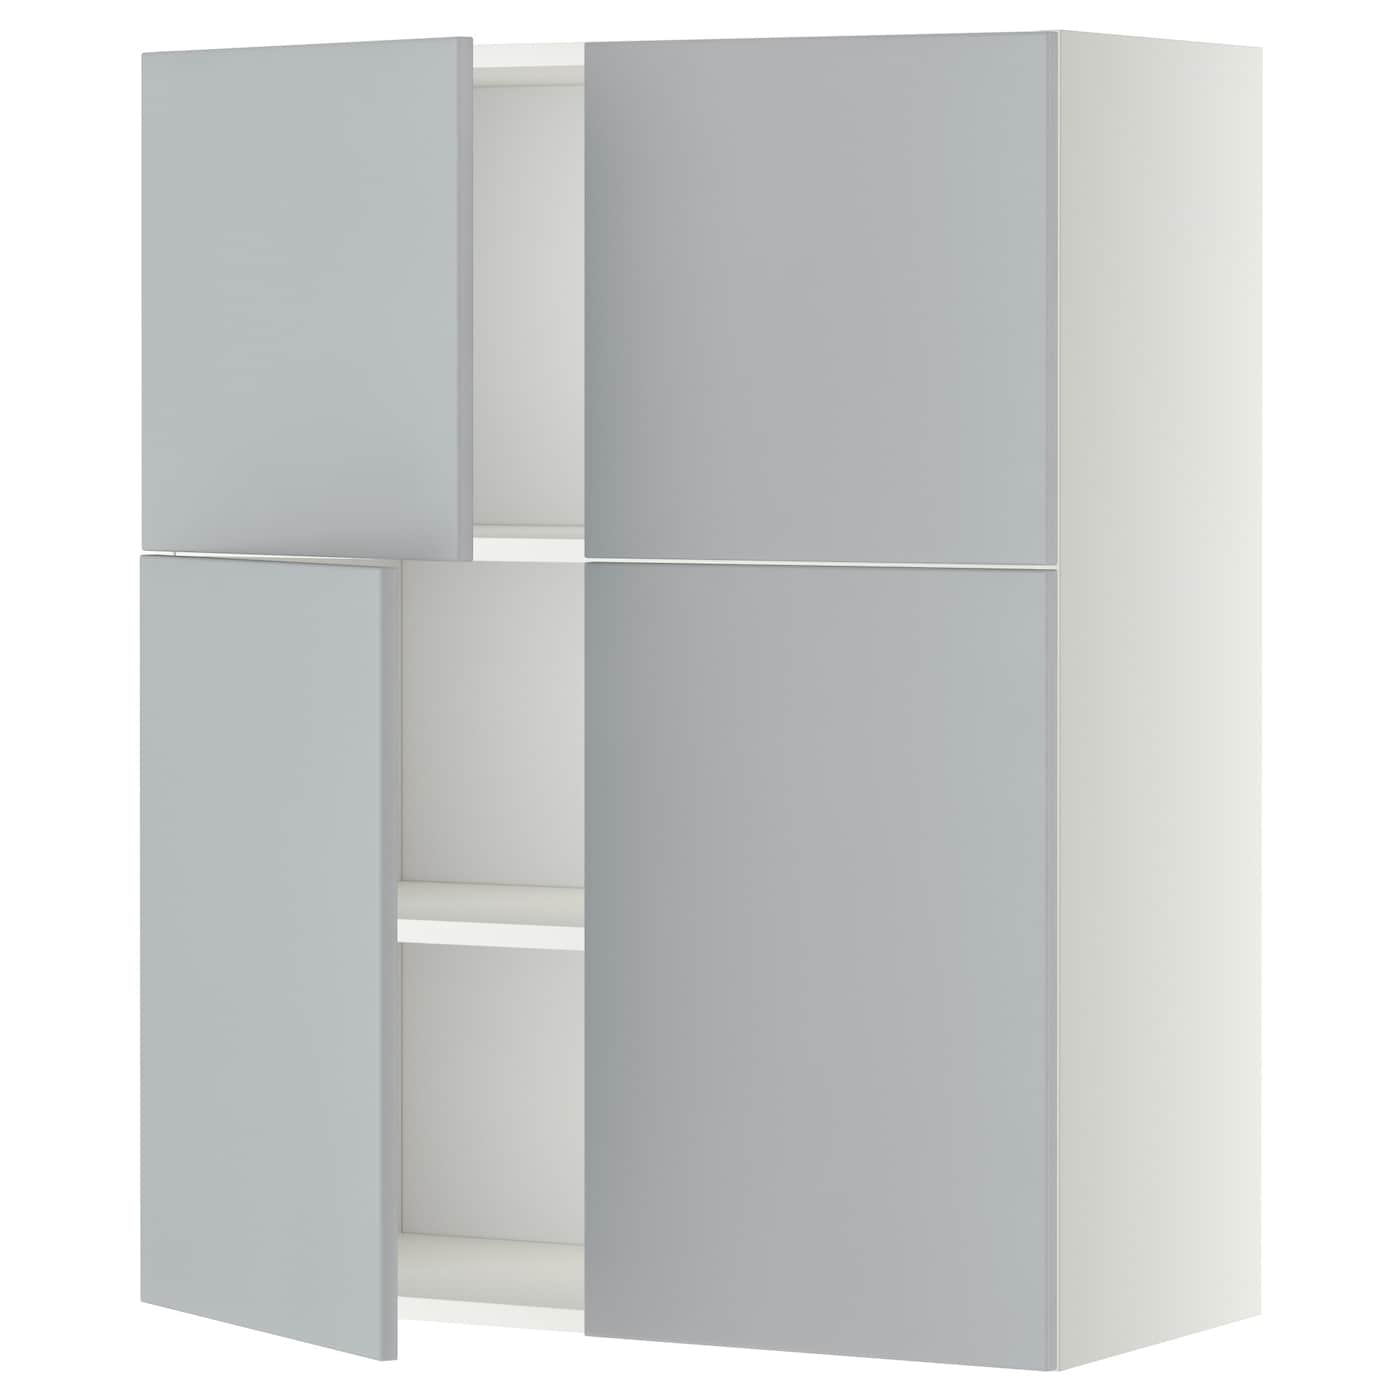 Metod wall cabinet with shelves 4 doors white veddinge for Kitchen cabinets at ikea